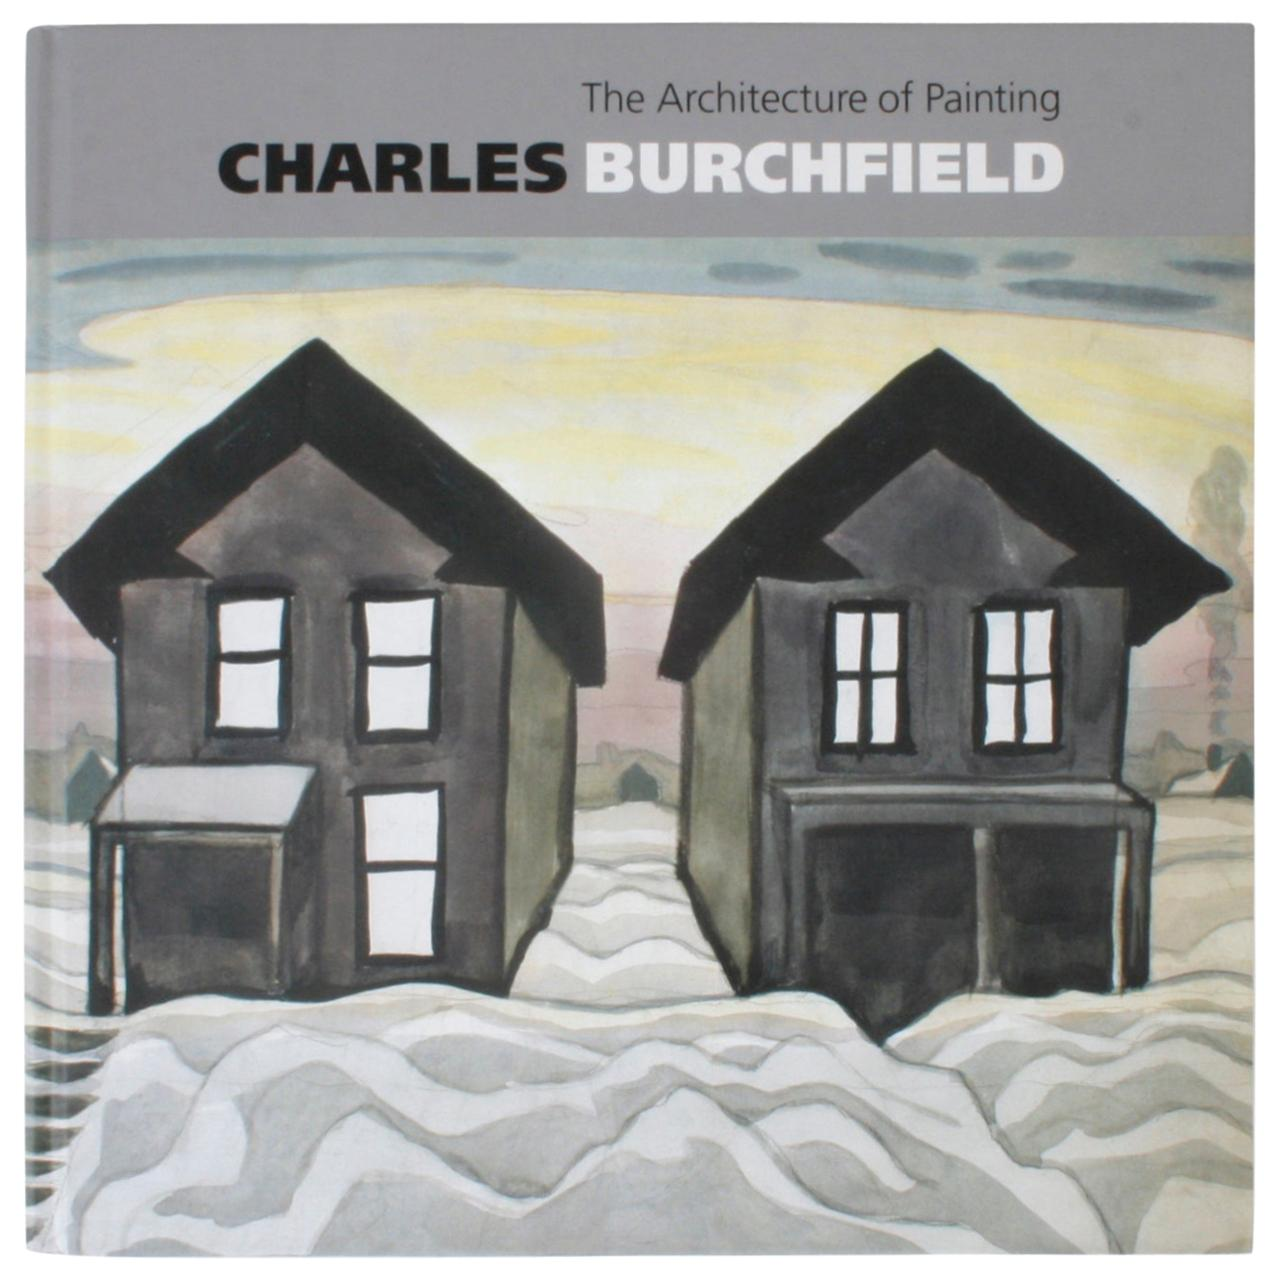 """Charles Burchfield"", the Architecture of Painting, First Edition"